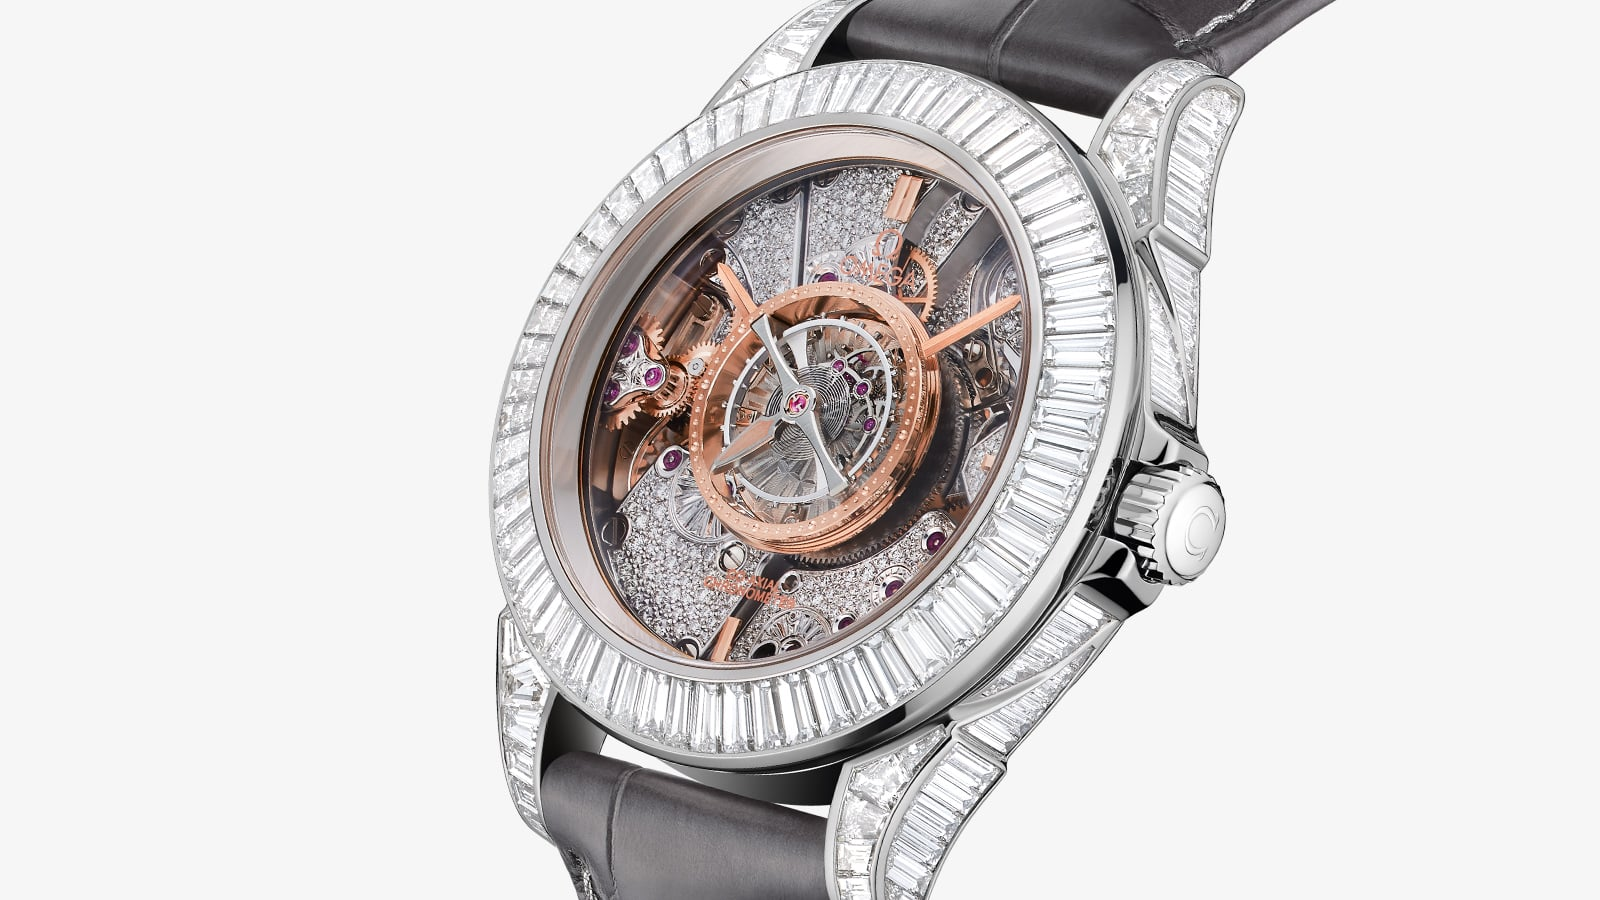 De Ville Tourbillon Die Kollektion - Folie 3 - 27540